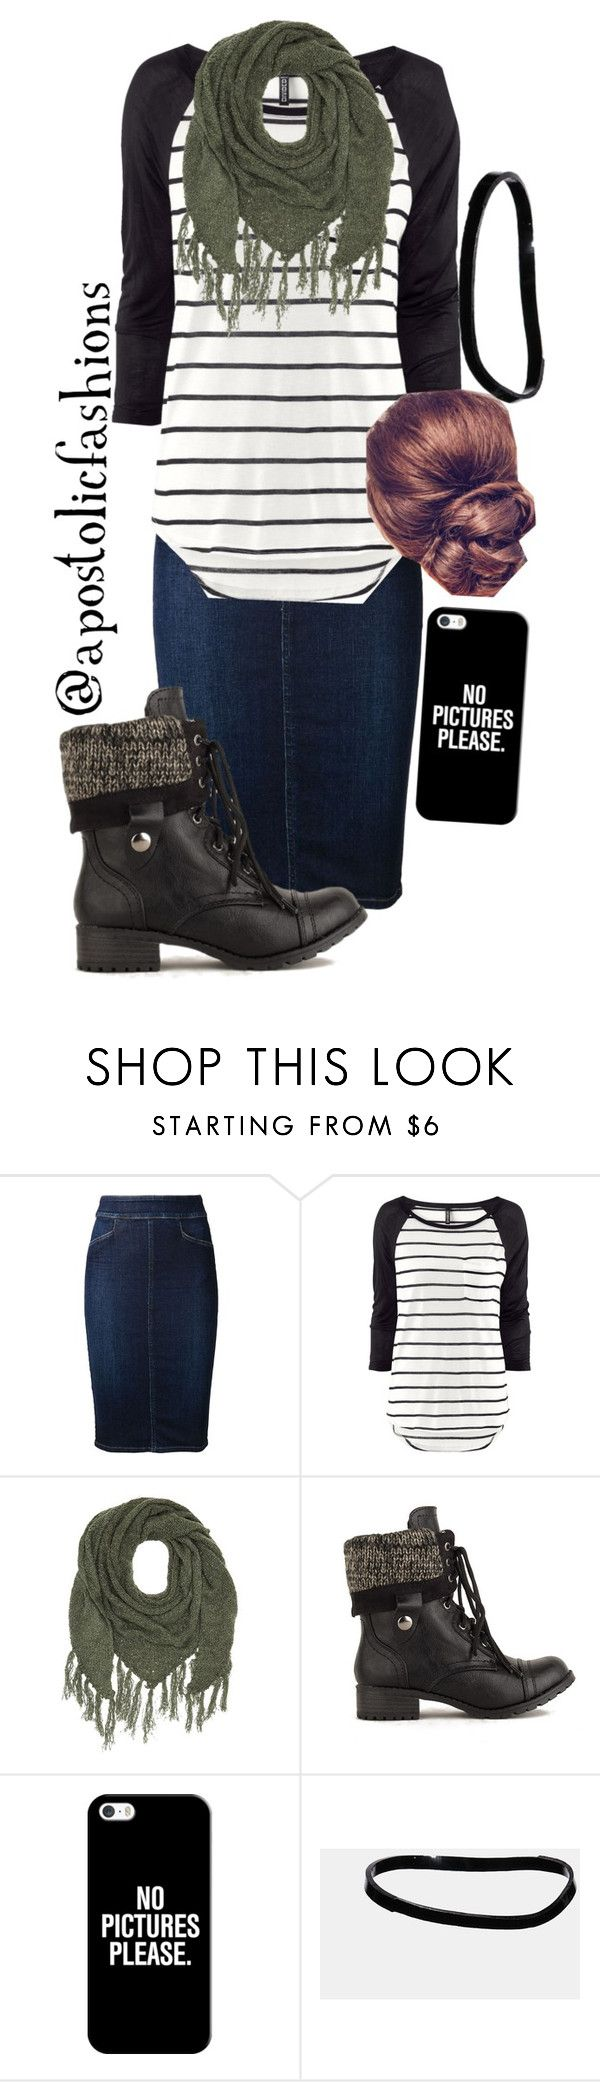 """""""Apostolic Fashions #911"""" by apostolicfashions ❤ liked on Polyvore featuring Citizens of Humanity, H&M, Charlotte Russe, Casetify and ASOS"""